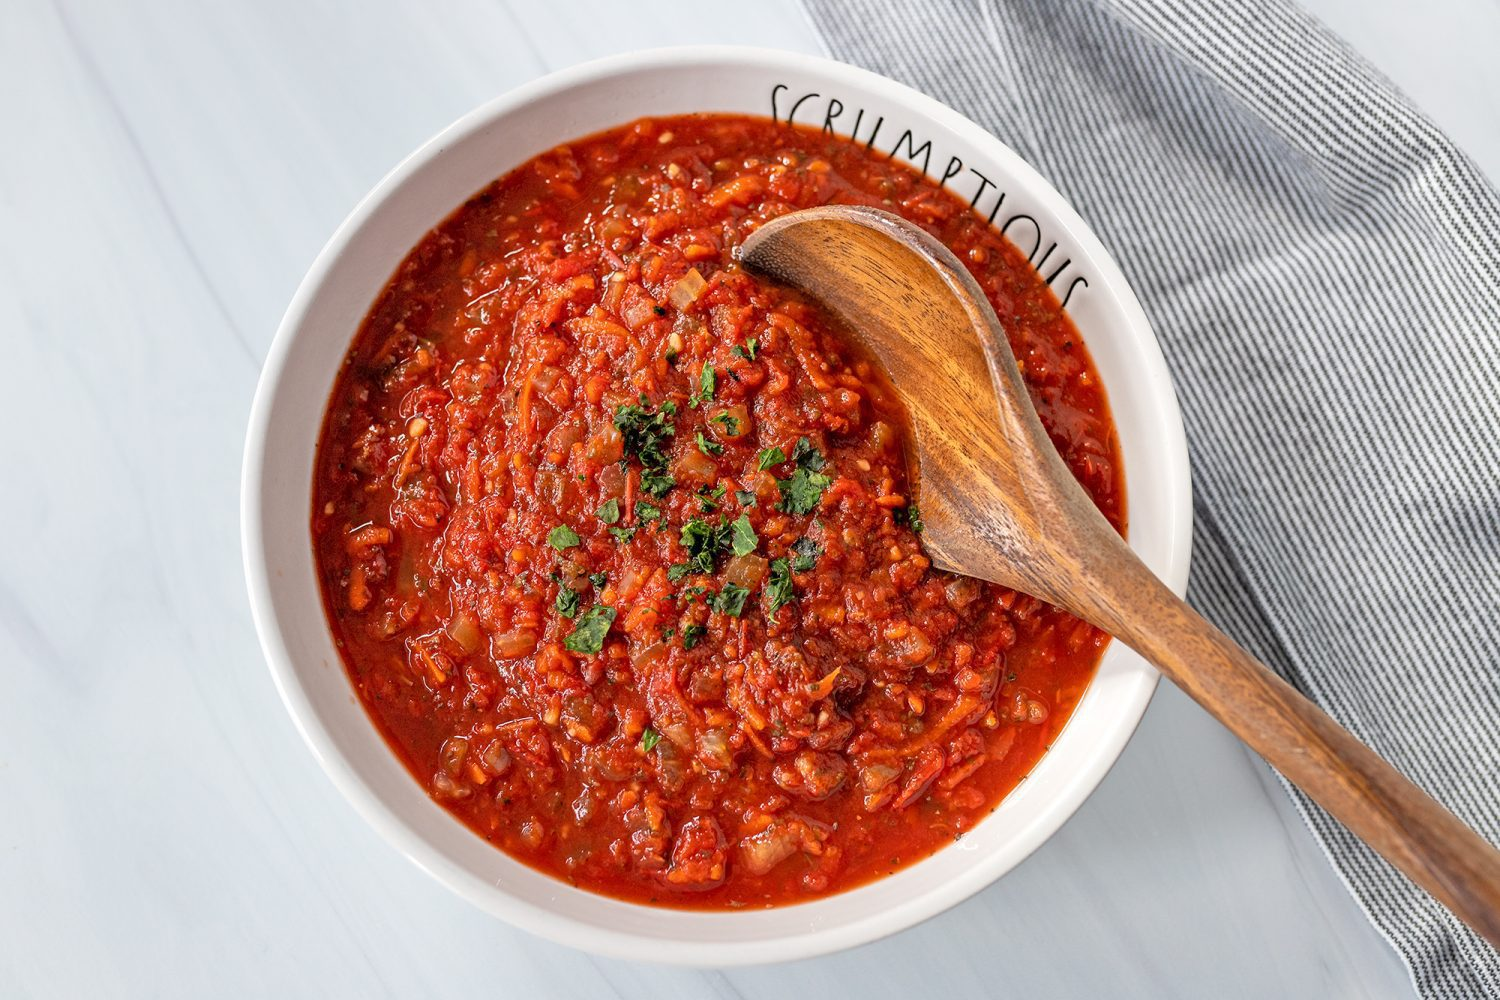 bowl of slow cooker pasta sauce with fresh basil